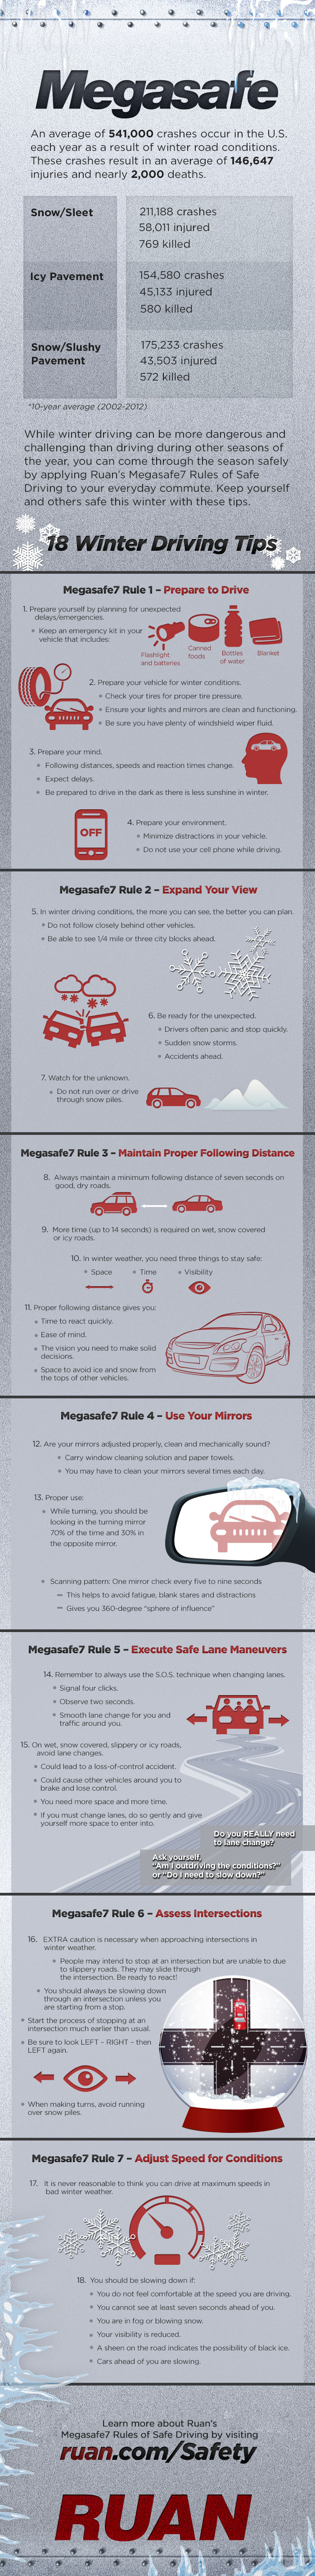 Ruan Winter Safety Driving Tips Infographic